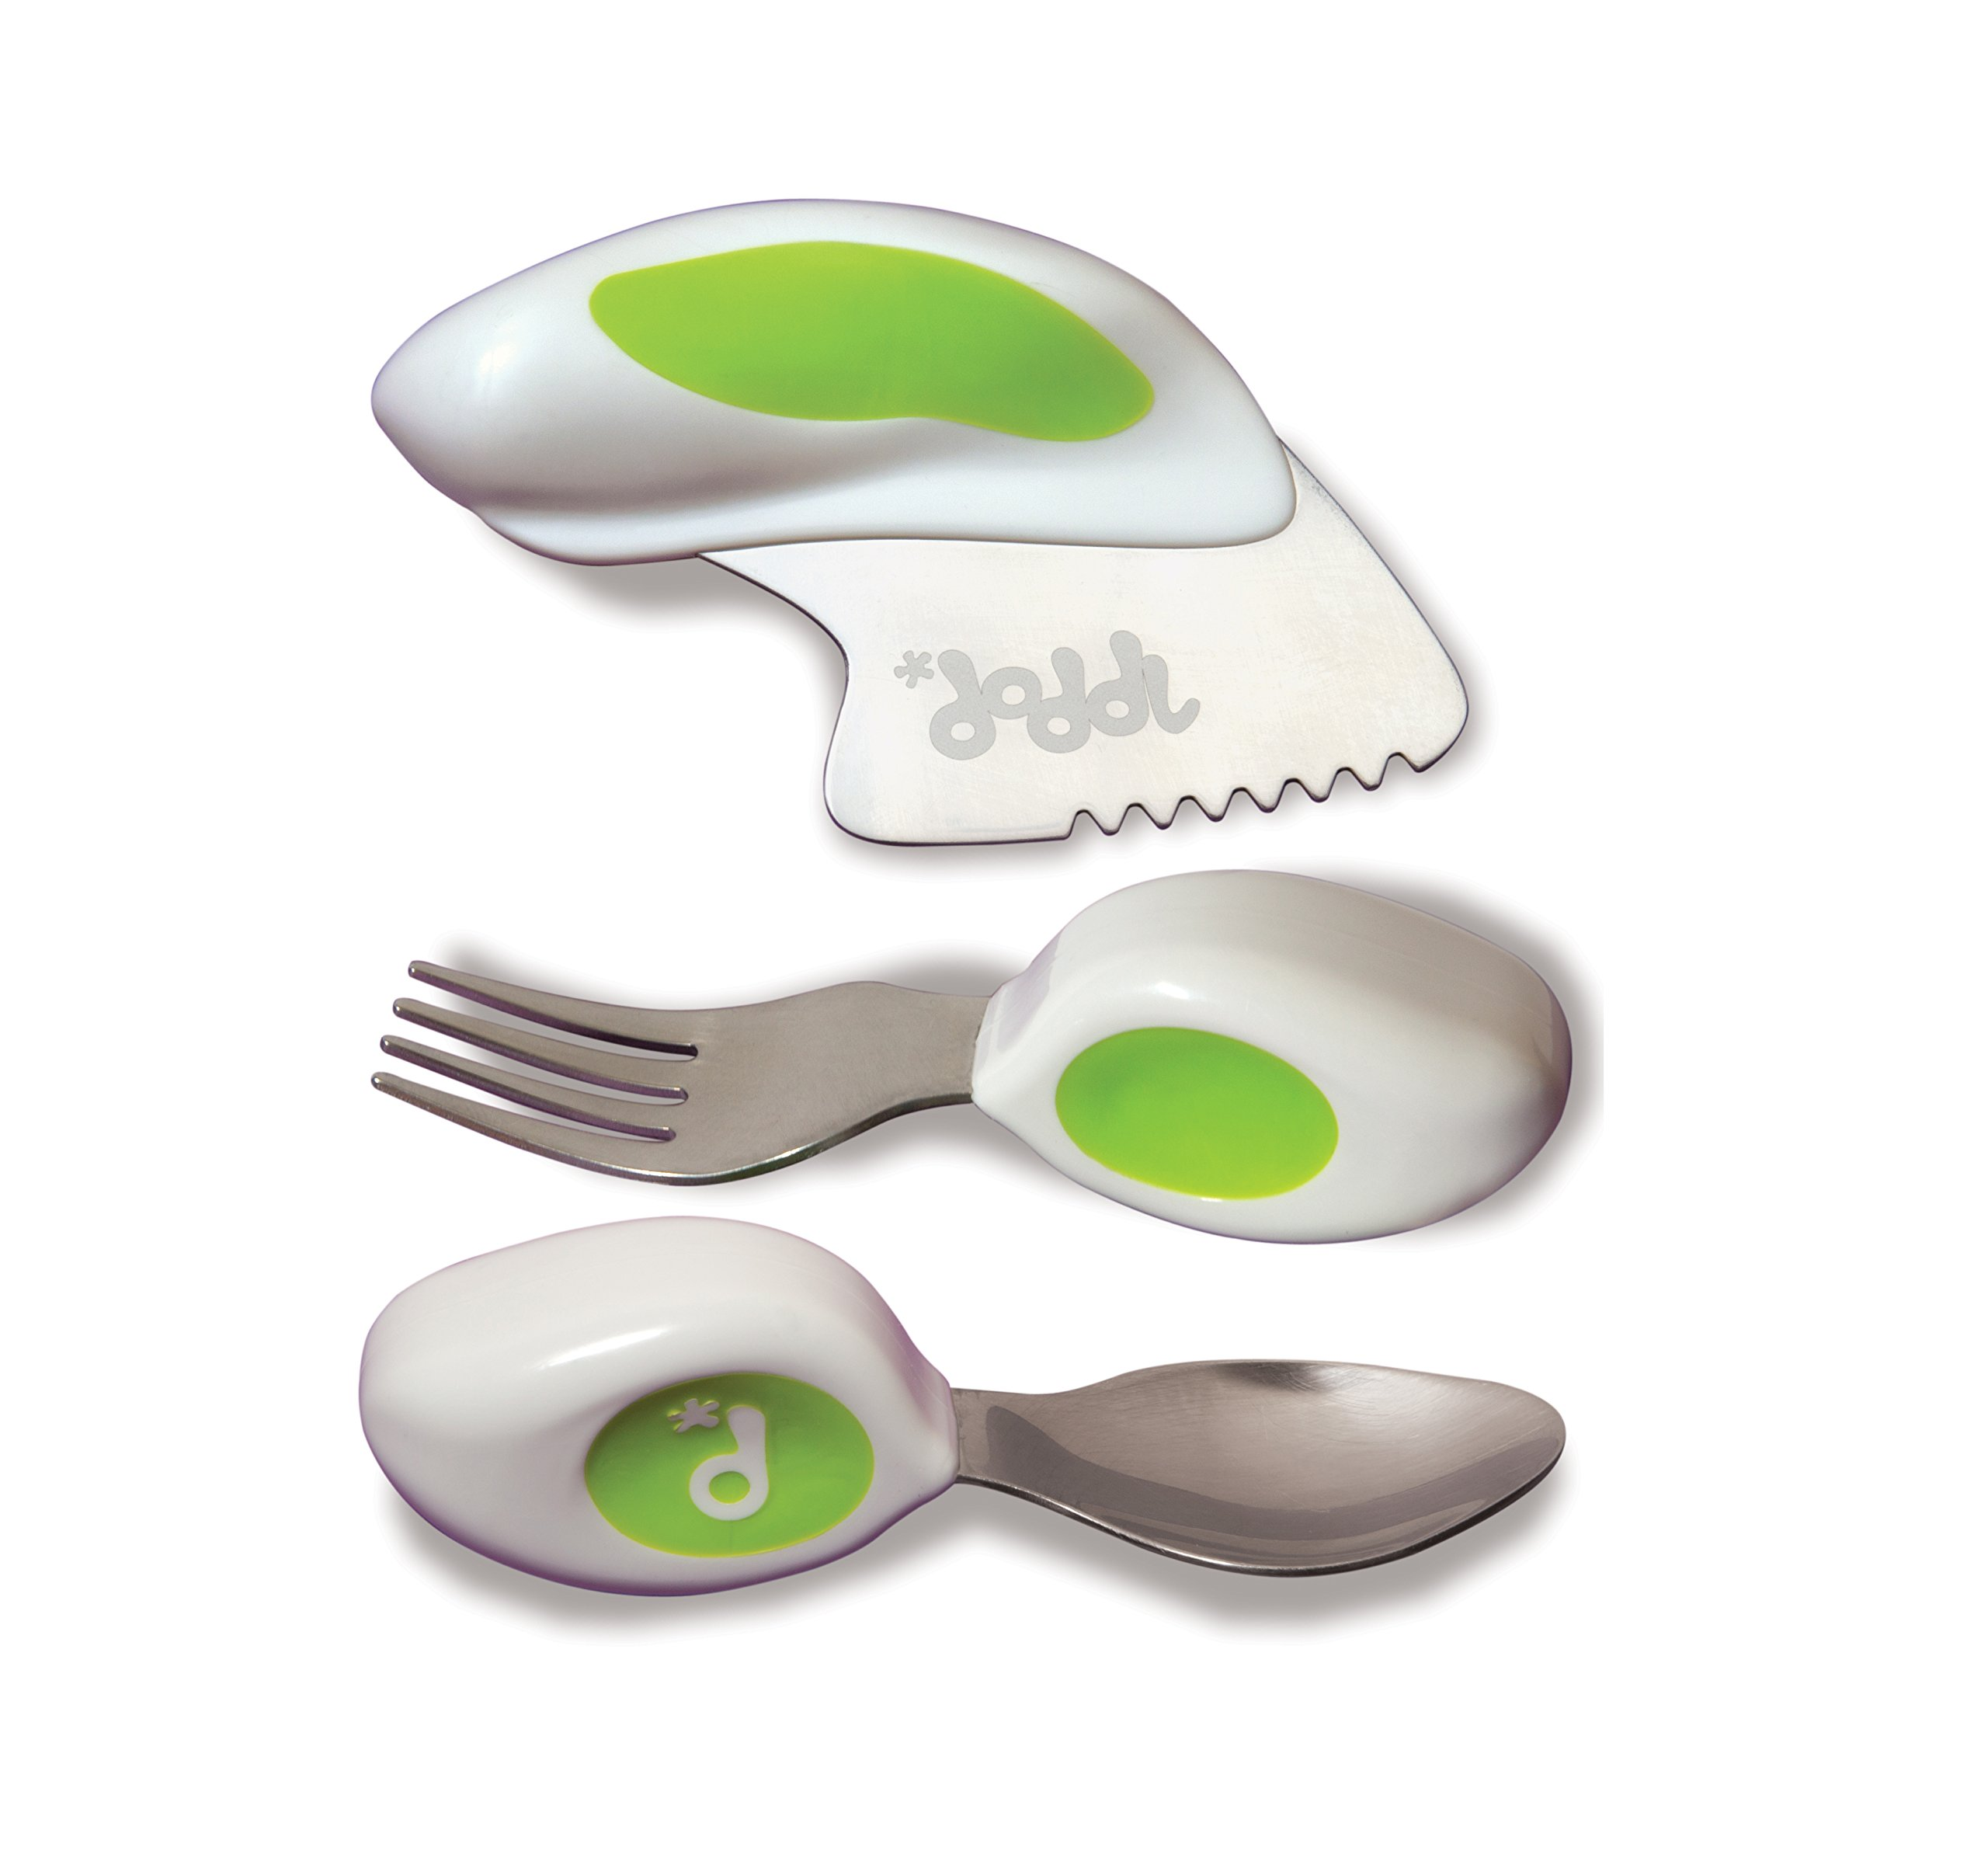 Doddl Knife, Fork & Spoon Cutlery Set, for Children, Toddlers or Babies 12 Months +, Flatware That Promotes Self Feeding Helping Kids to Use Silverware Utensils in The Right Way (Lime Green)